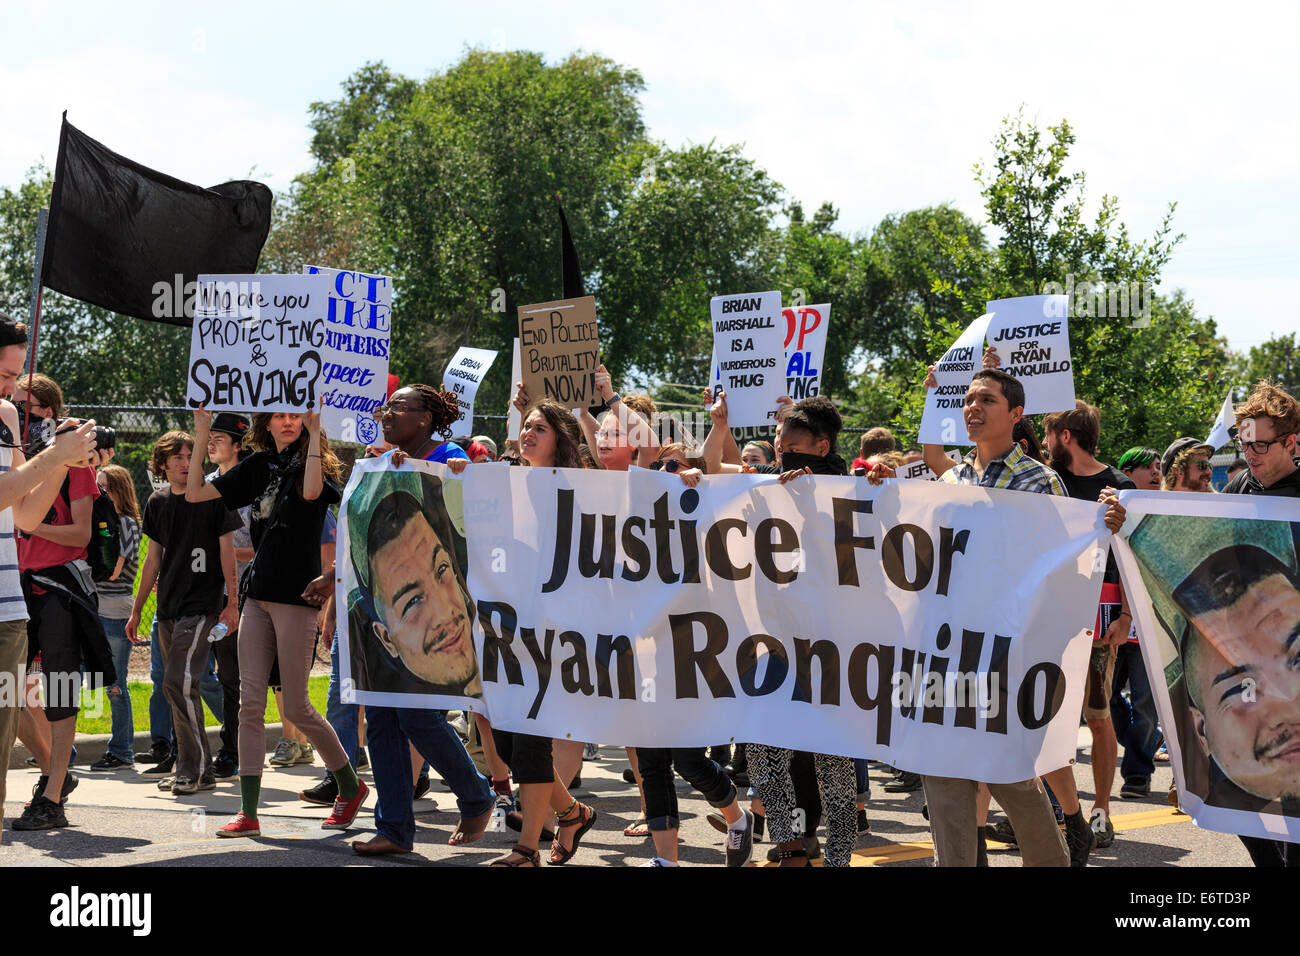 Denver, Colorado, USA. 30th Aug, 2014. Activists march for justice in solidarity with Ferguson to support the family - Stock Image